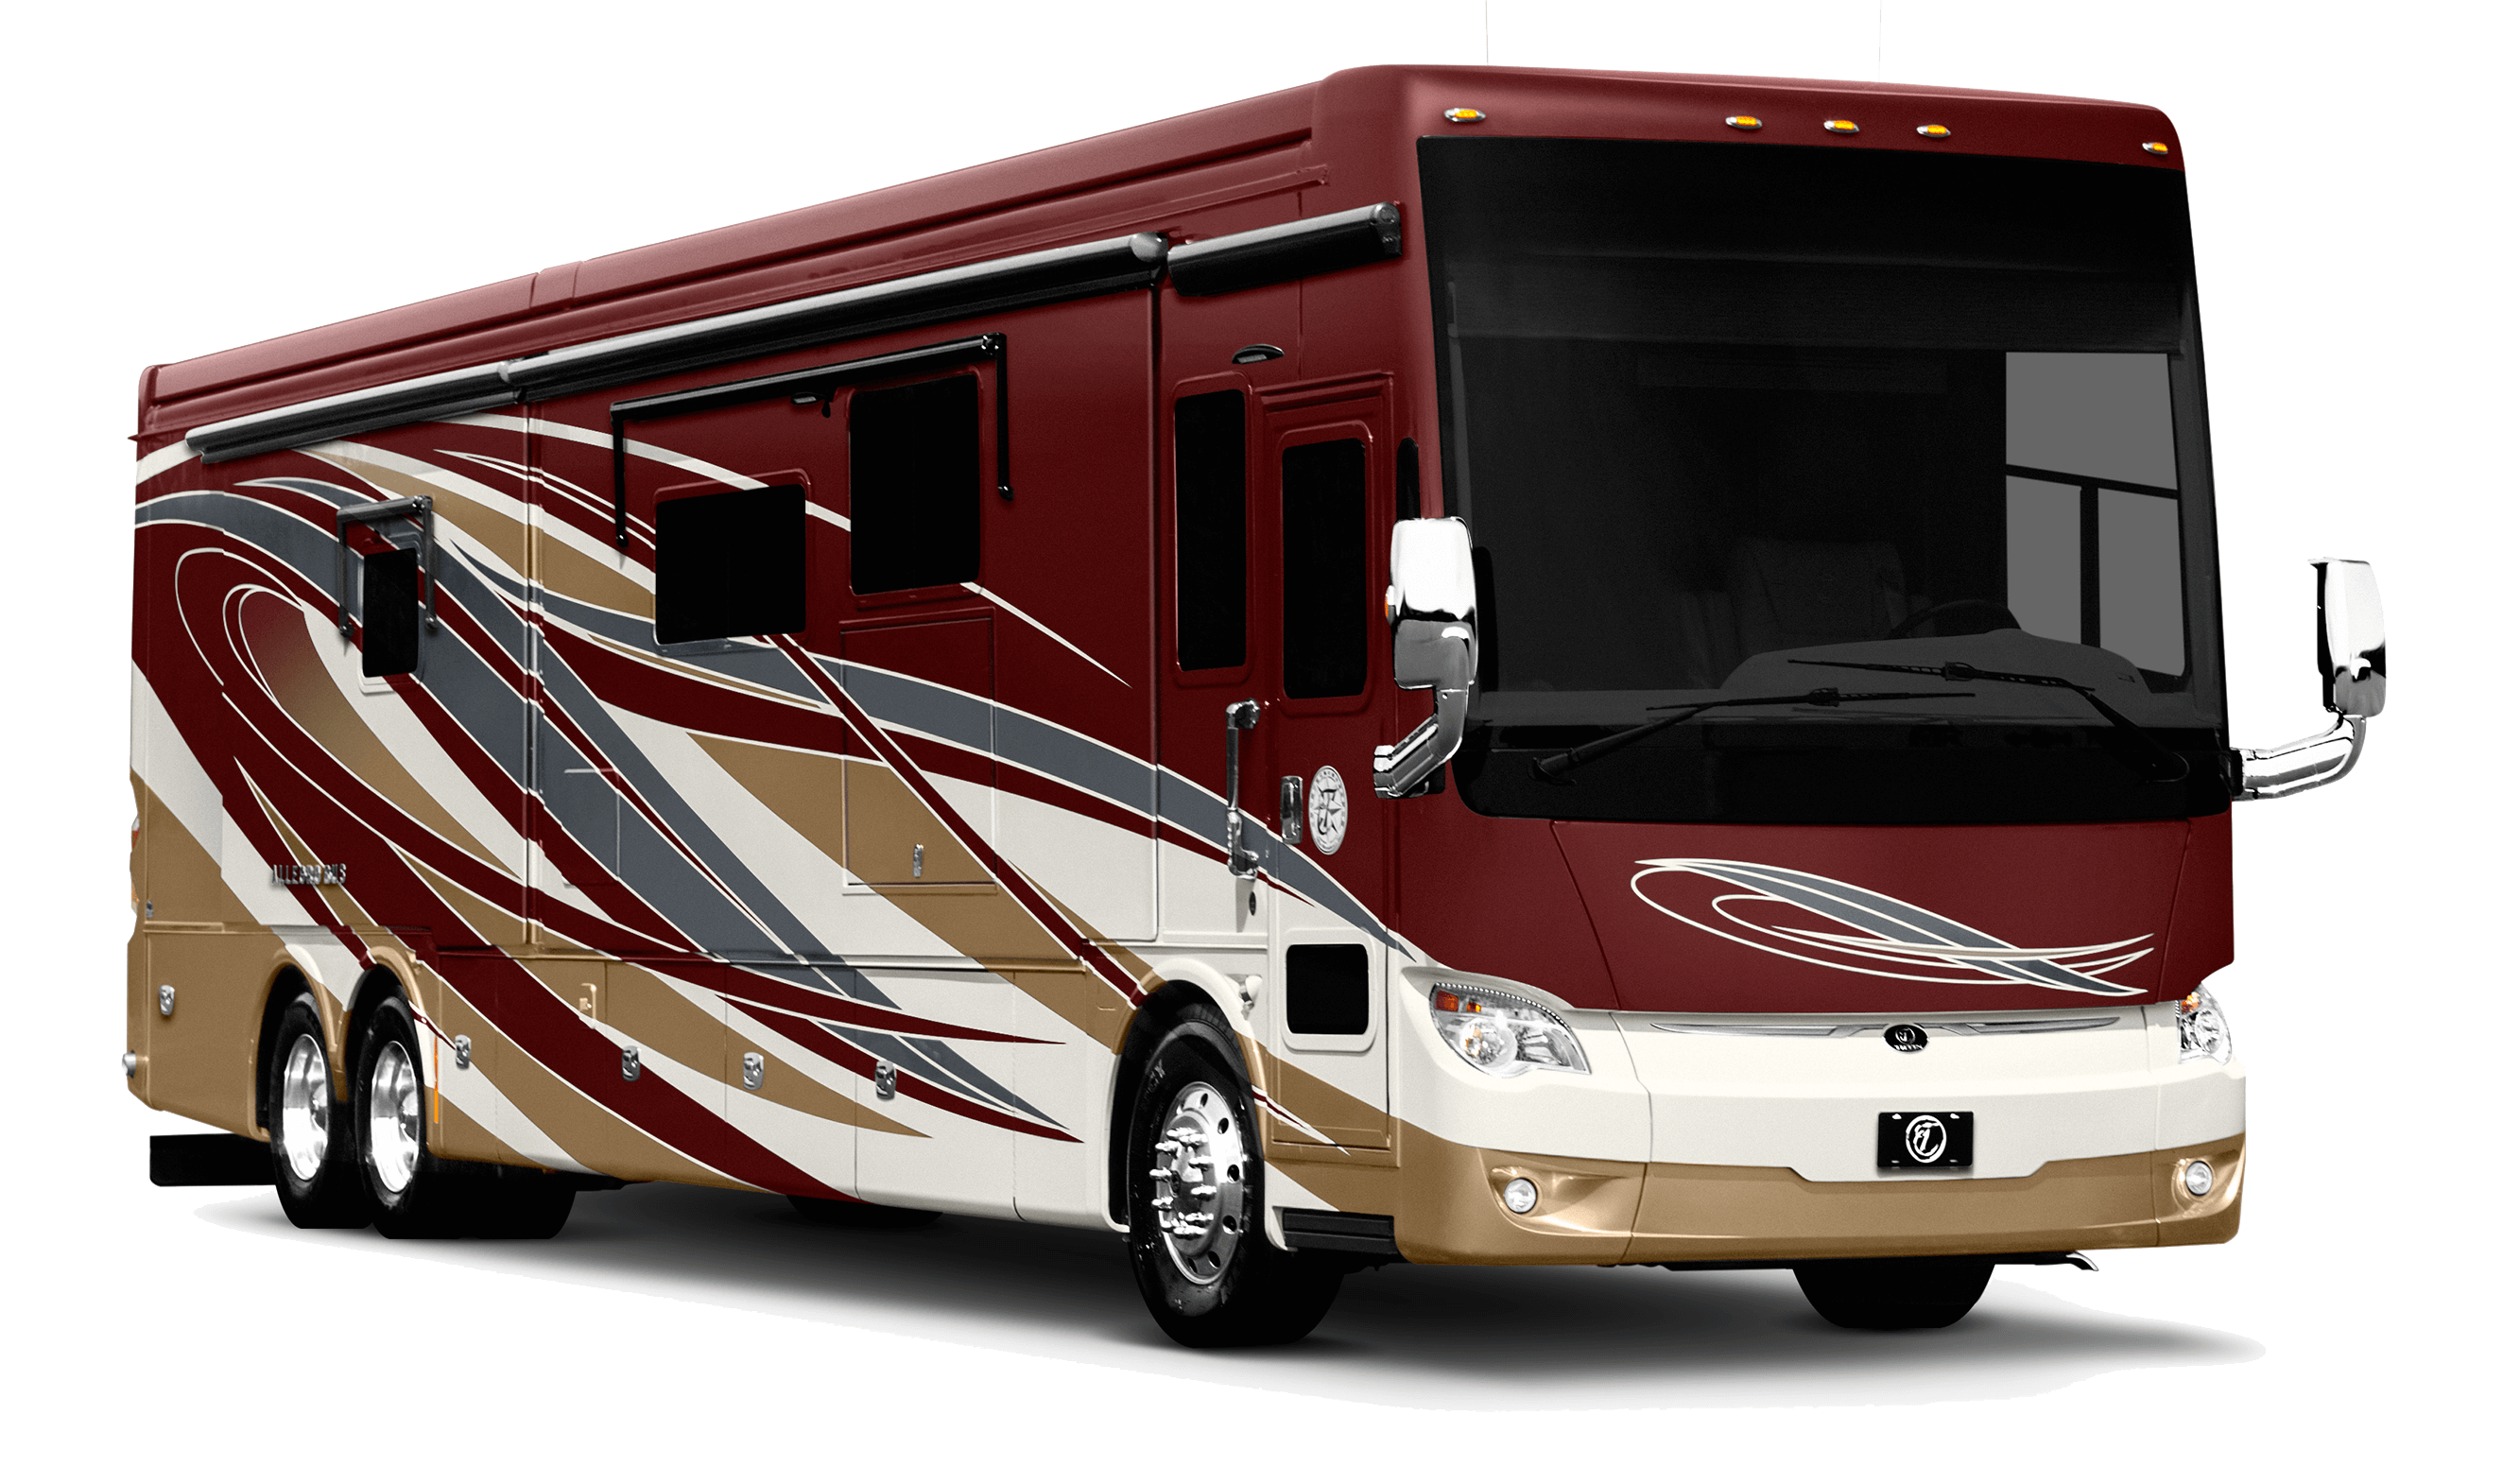 Tiffin Allegro Bus Diesel Motorhomes Luxury On The Road 2007 Weekend Warrior Wiring Diagram